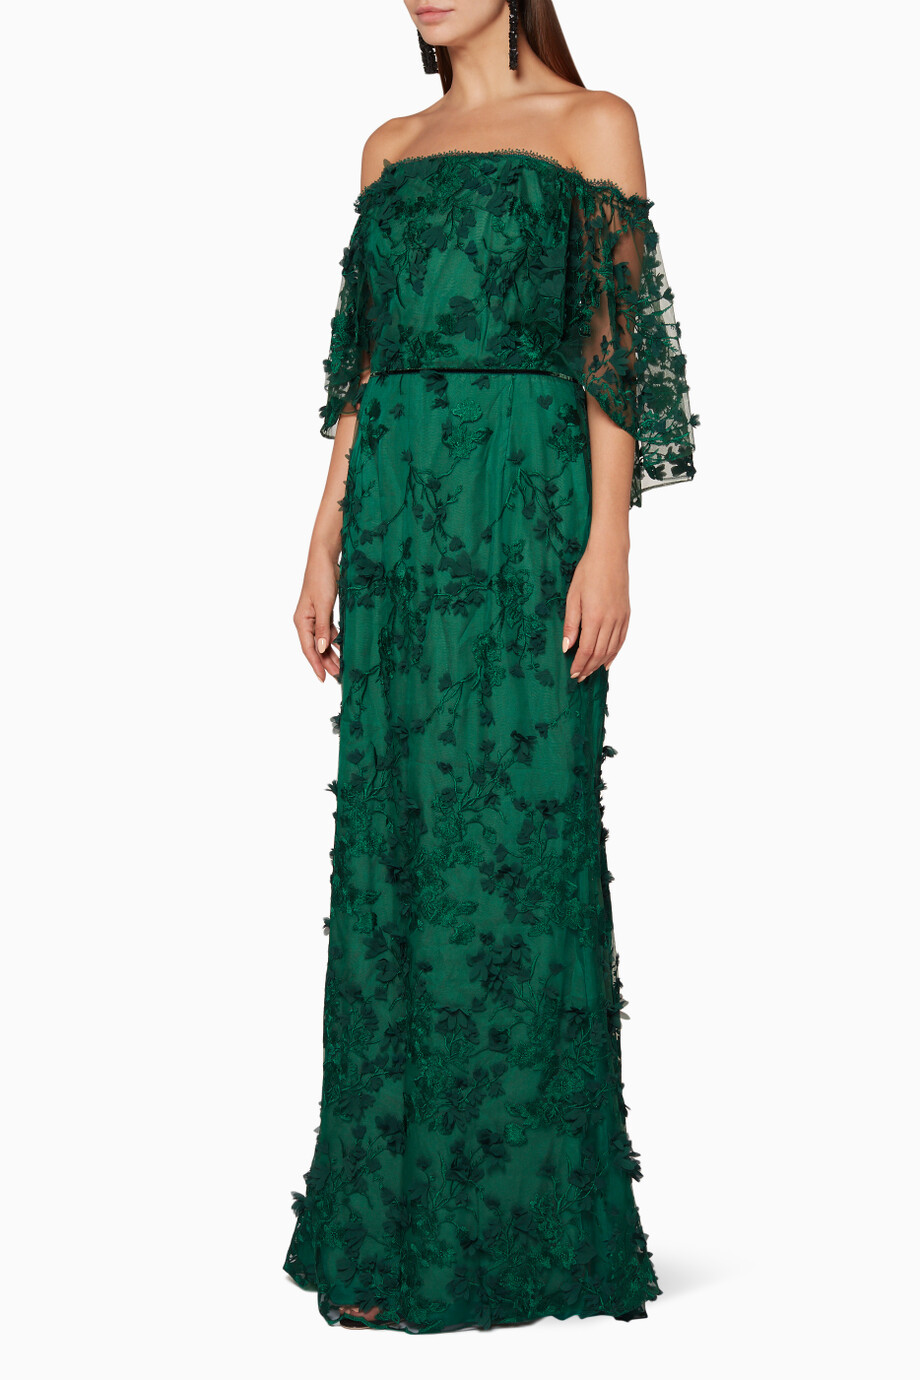 64eaa39e Shop Marchesa Notte Green Emerald-Green Embroidered Off-The ...